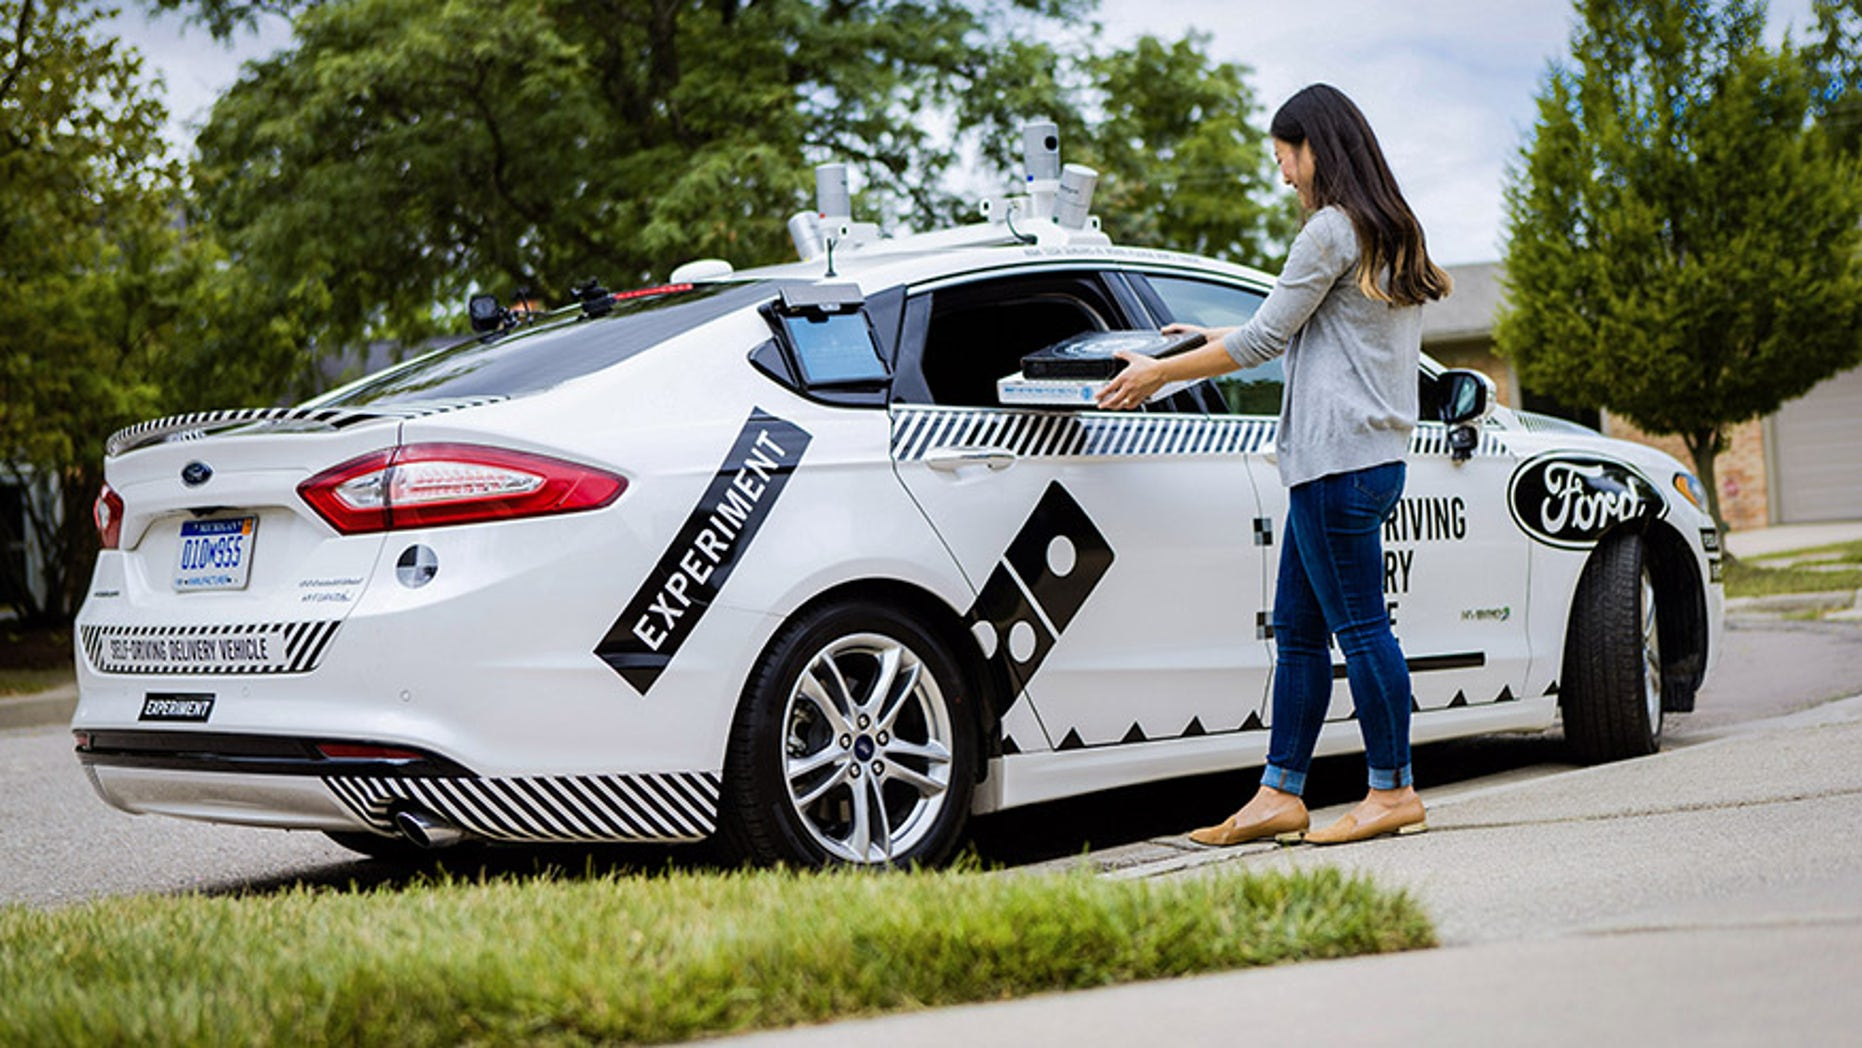 deb0a399a8 Domino s and Ford testing self-driving pizza delivery car